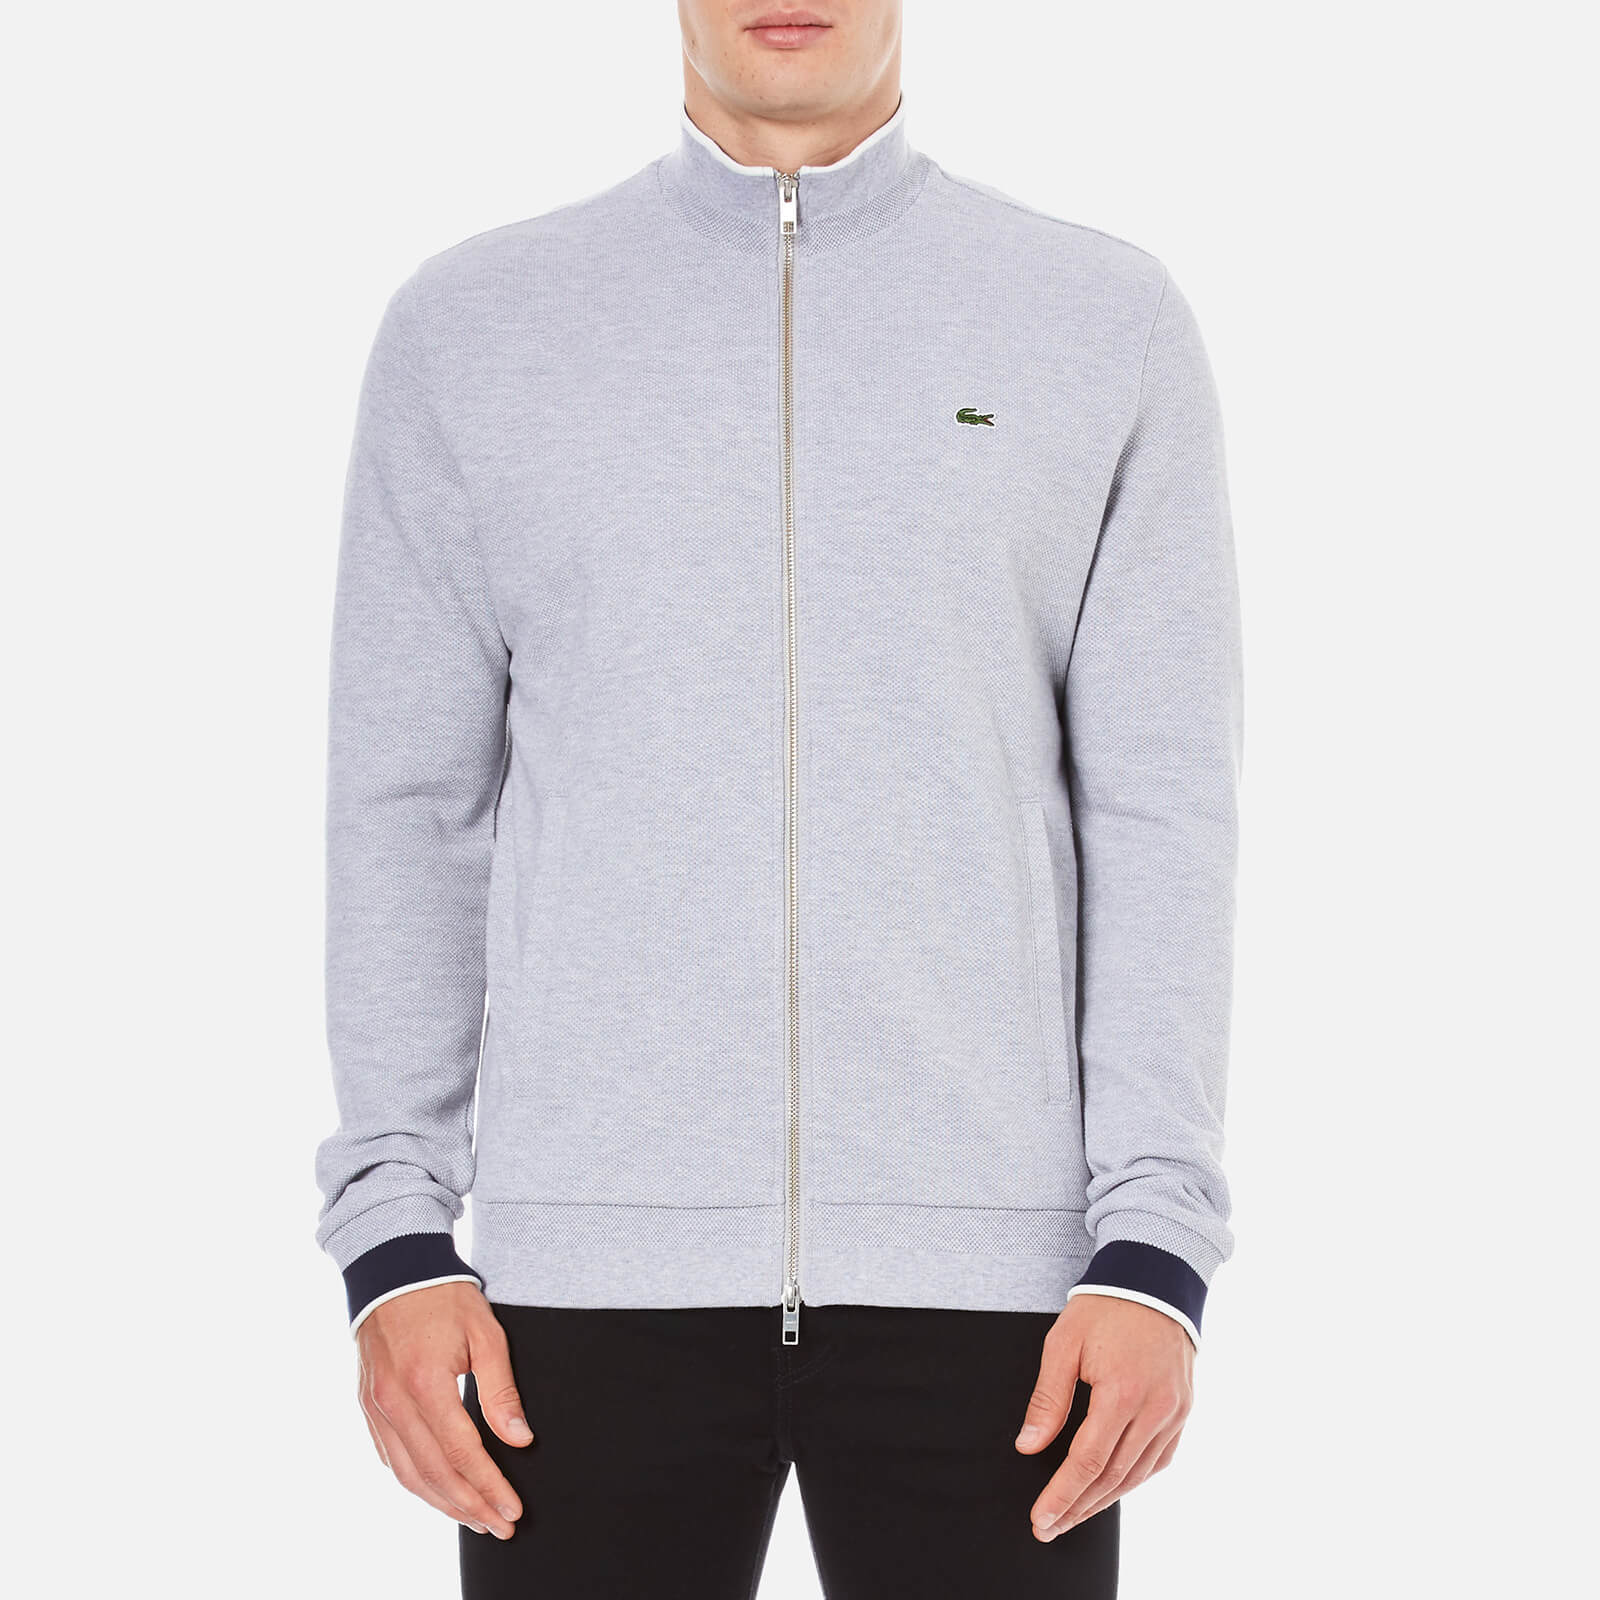 bc46aa5698 Lacoste Men's Zip Through Sweatshirt - Silver Chine - Free UK Delivery over  £50